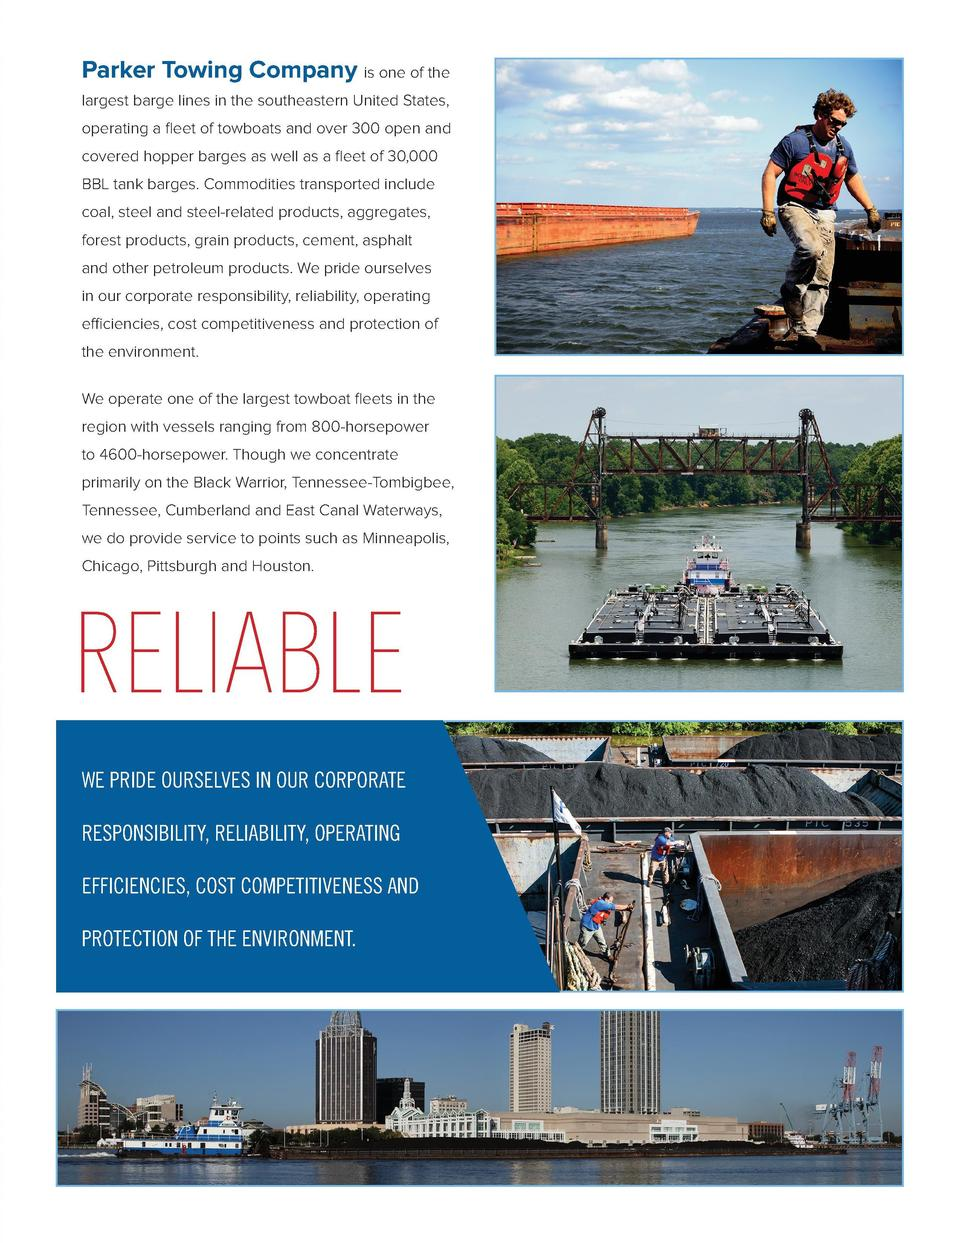 Parker Towing Company is one of the largest barge lines in the southeastern United States, operating a fleet of towboats a...